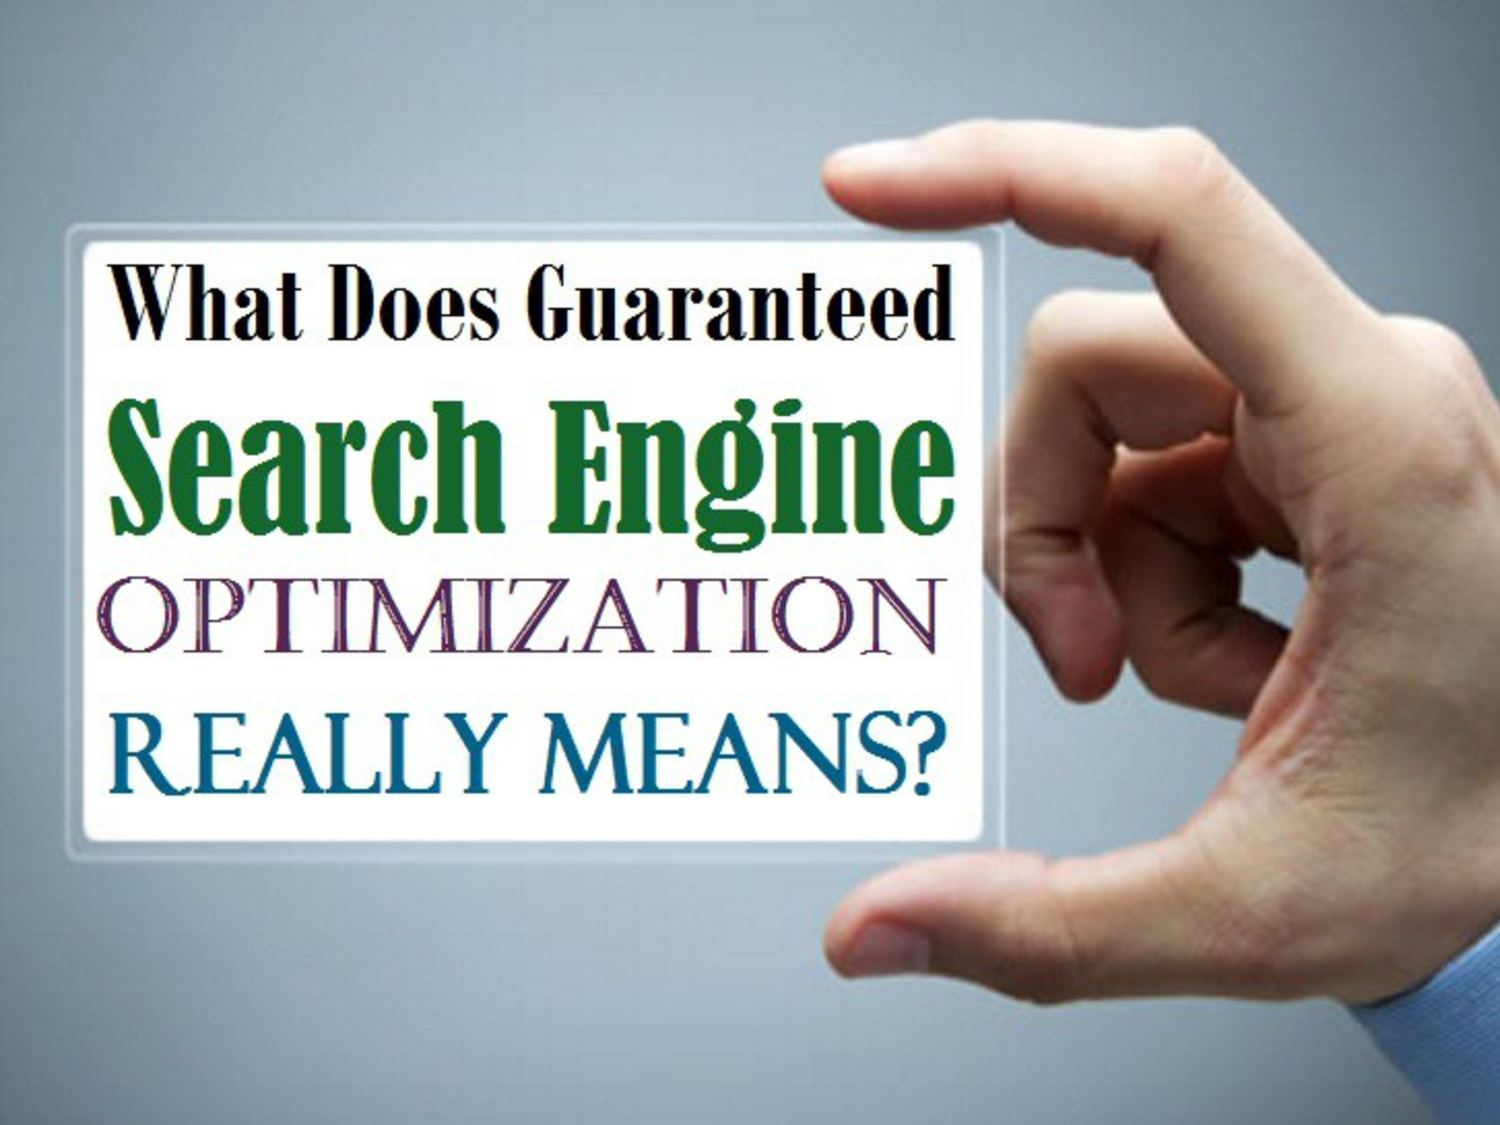 What Does Guaranteed Search Engine Optimization Really Means?